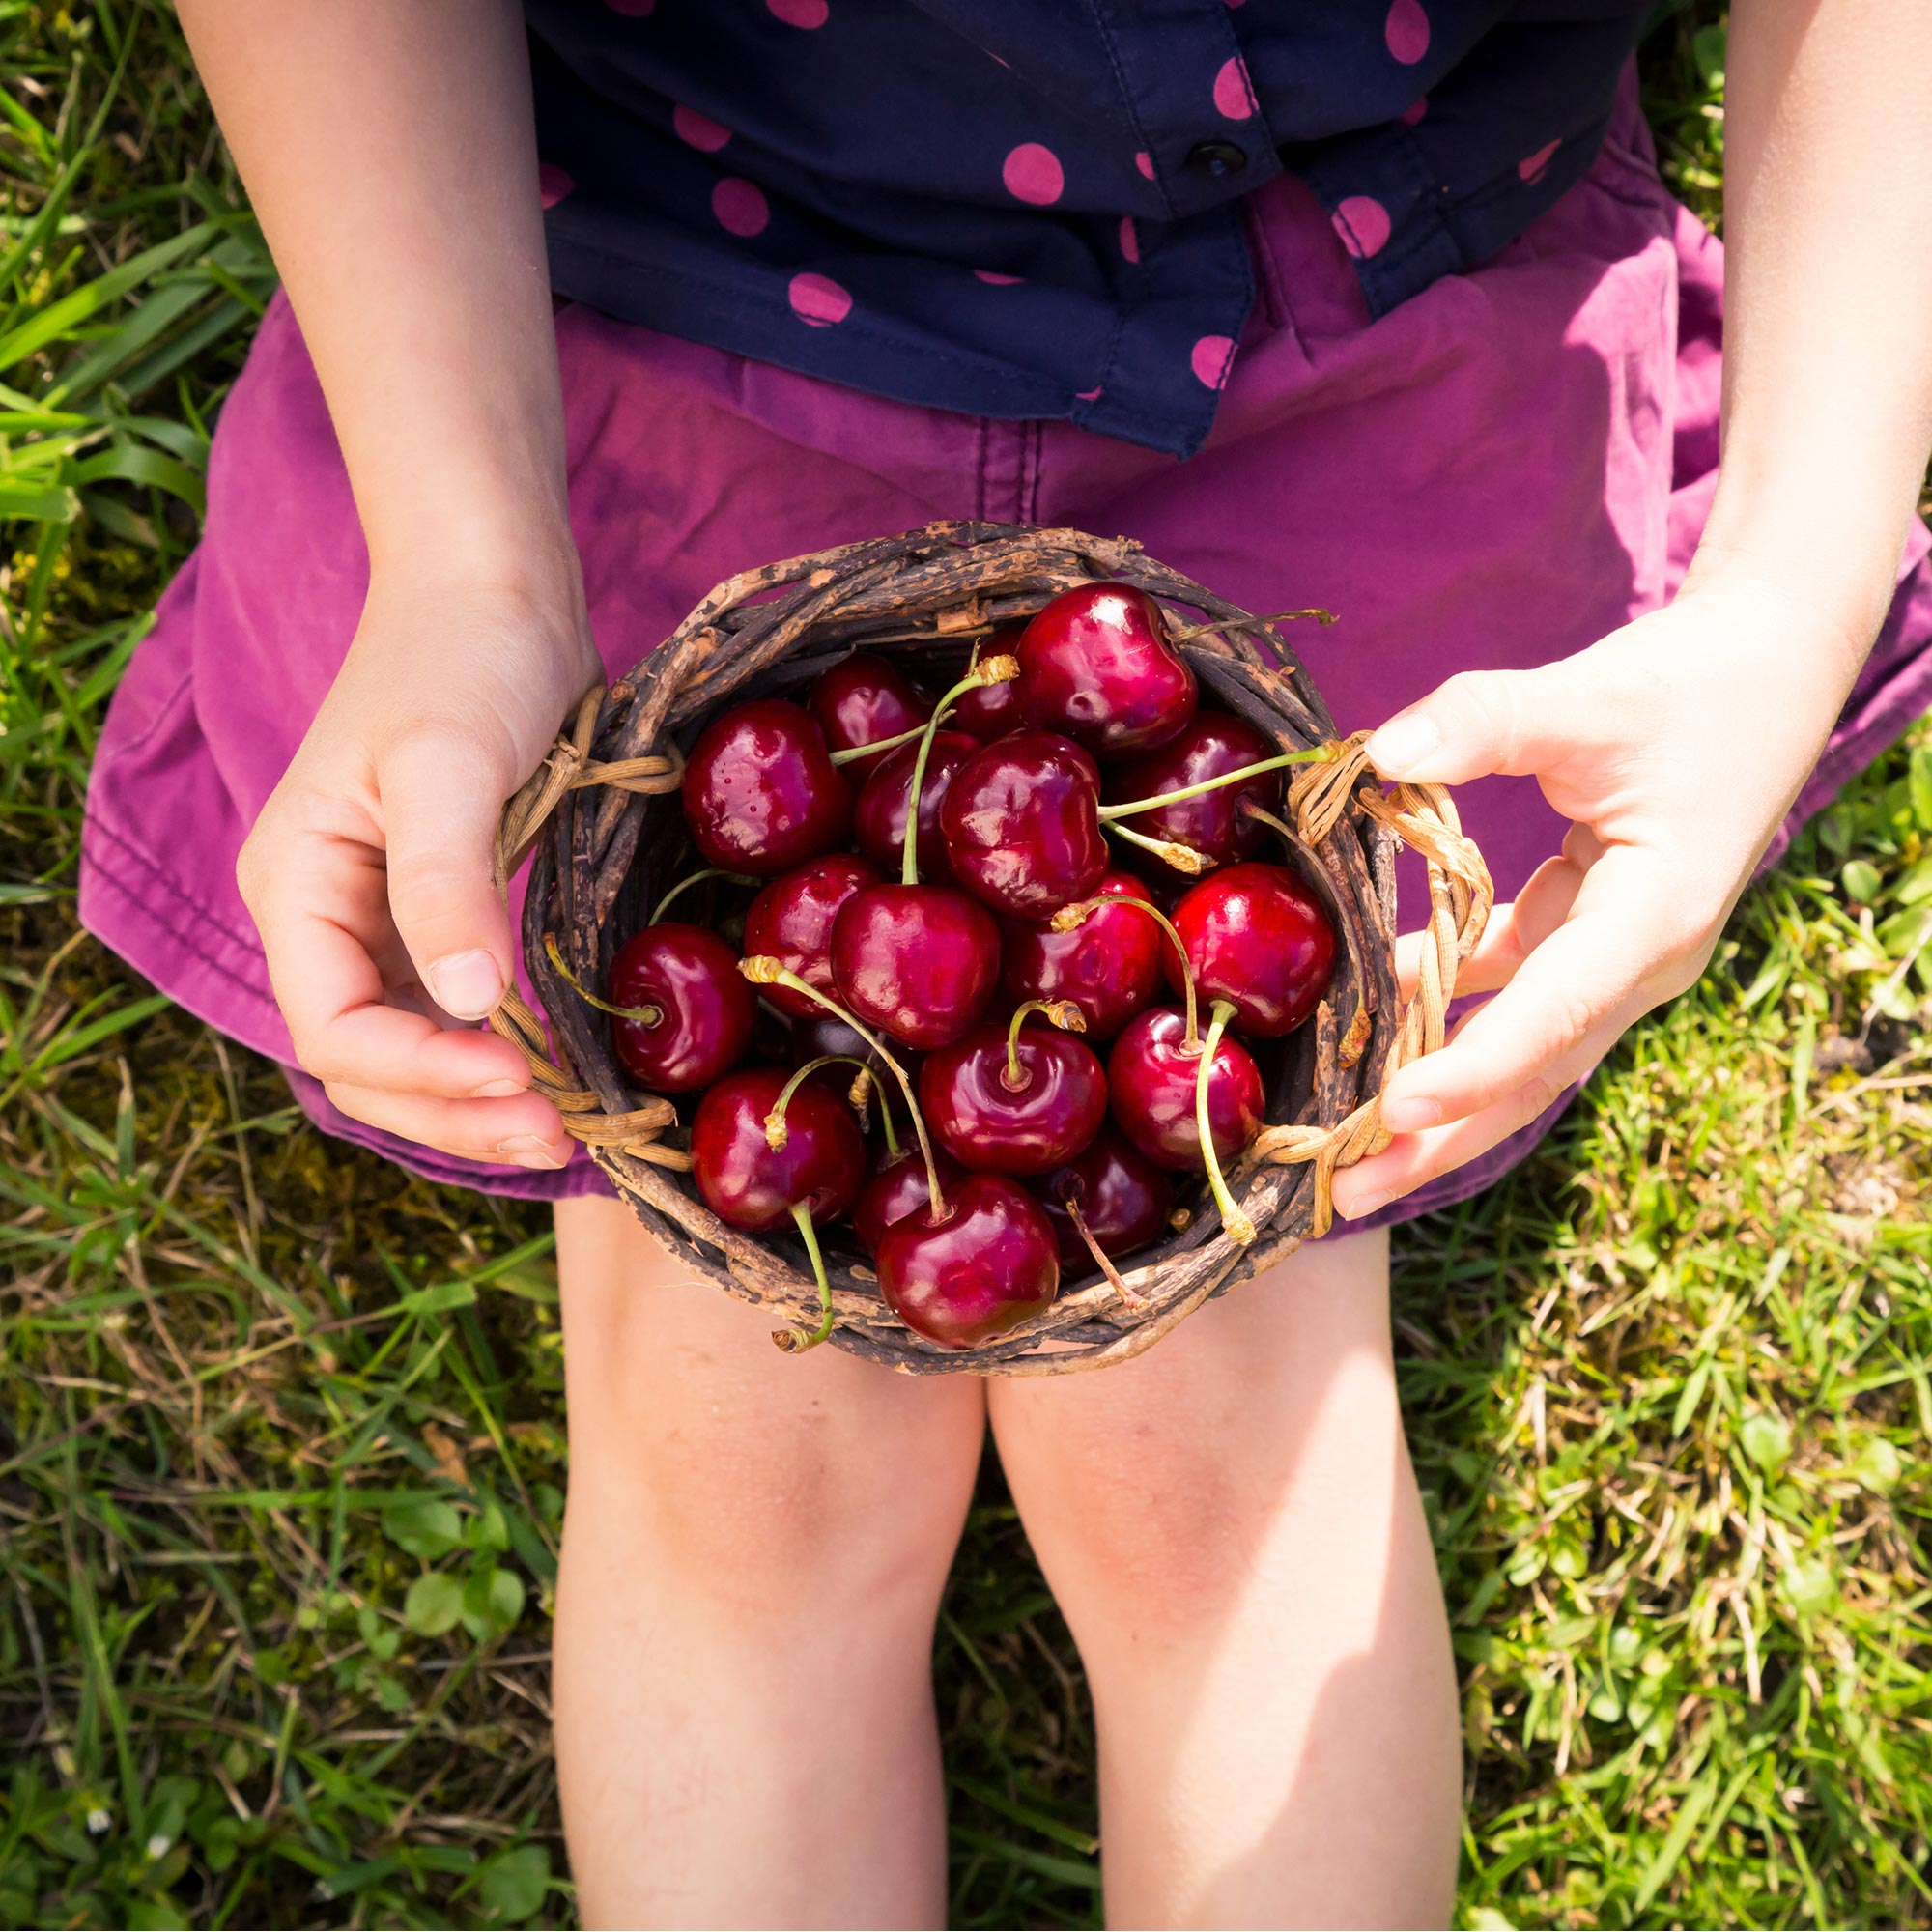 Girl sitting in the grass holding a basket of cherries.